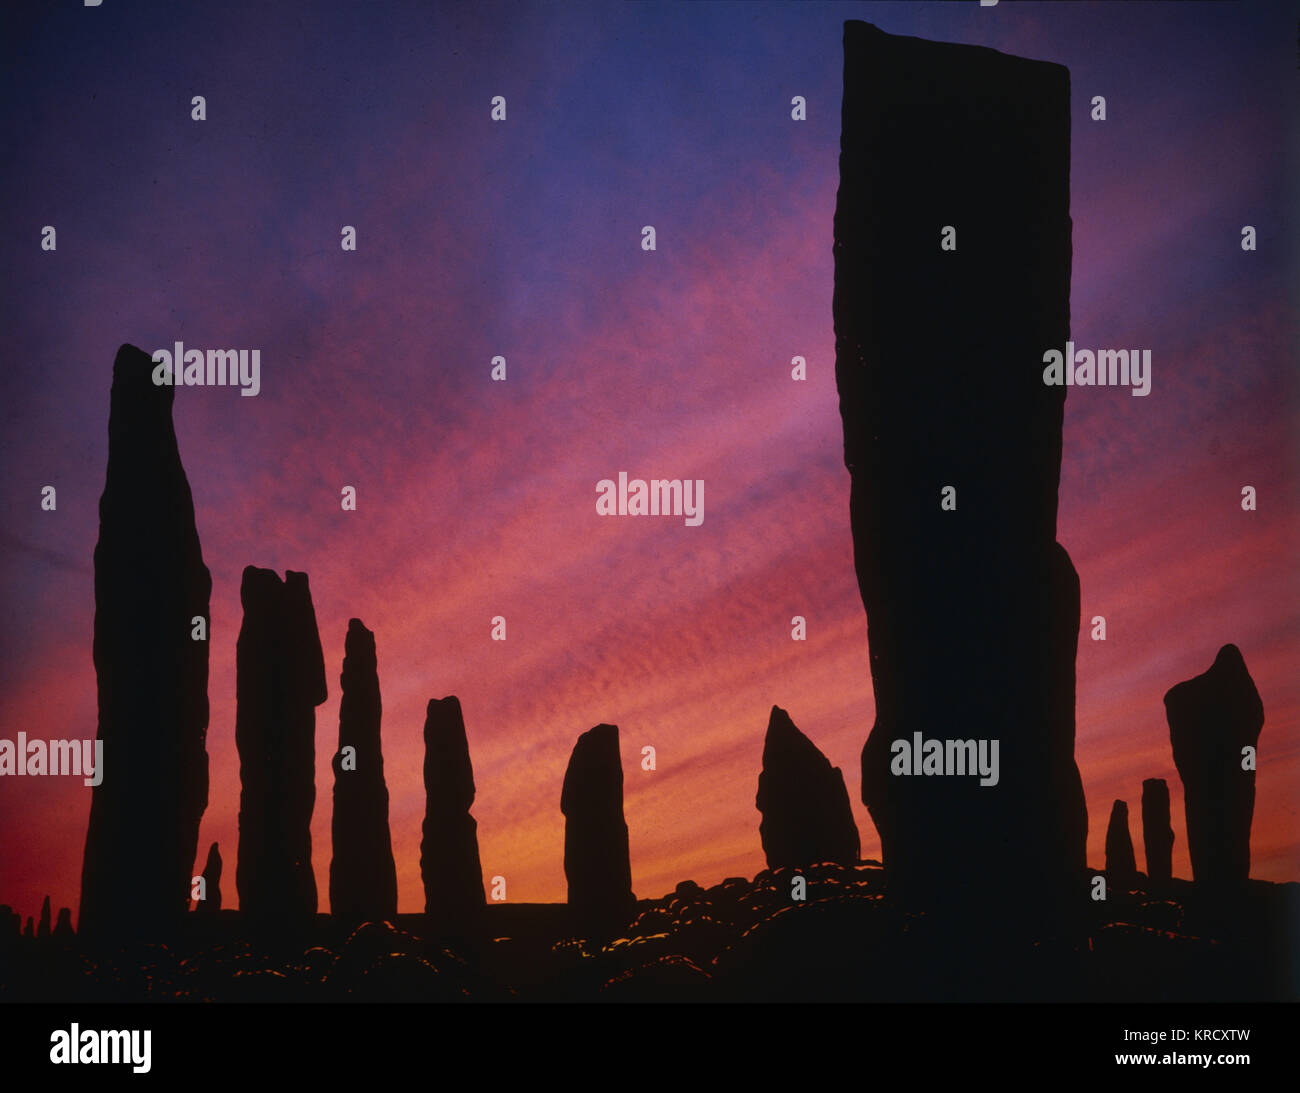 Sunset over the ancient standing stones of Callanish  Stone Circle, Isle of Lewis, outer Hebrides, Scotland.    - Stock Image